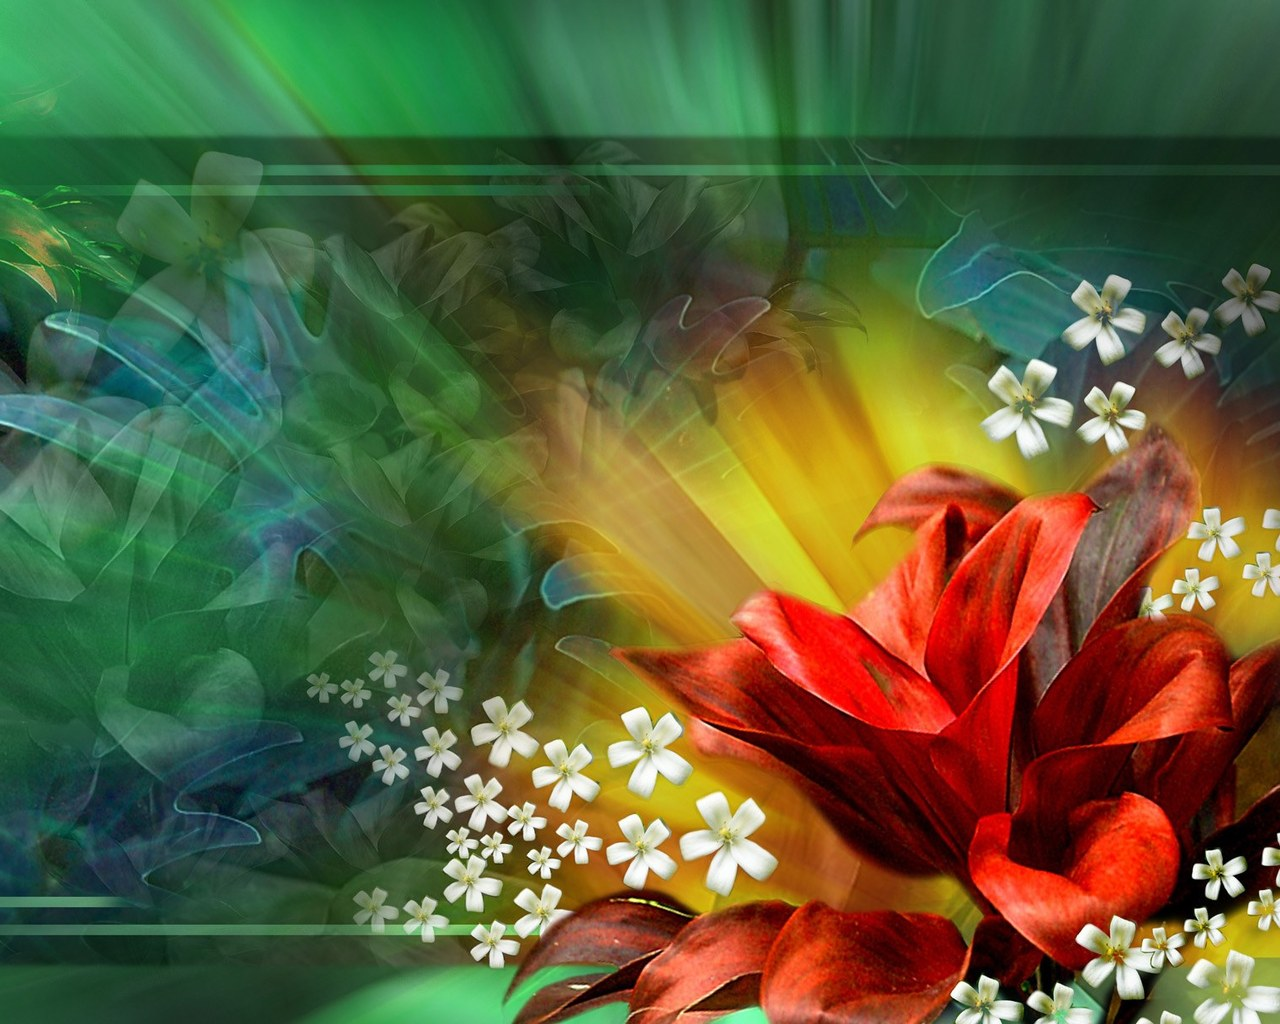 http://4.bp.blogspot.com/-YHA47J7TW10/TY7kL6g8siI/AAAAAAAACes/zvbTg8S1p2A/s1600/best-abstract-wallpapers-6-1.jpg